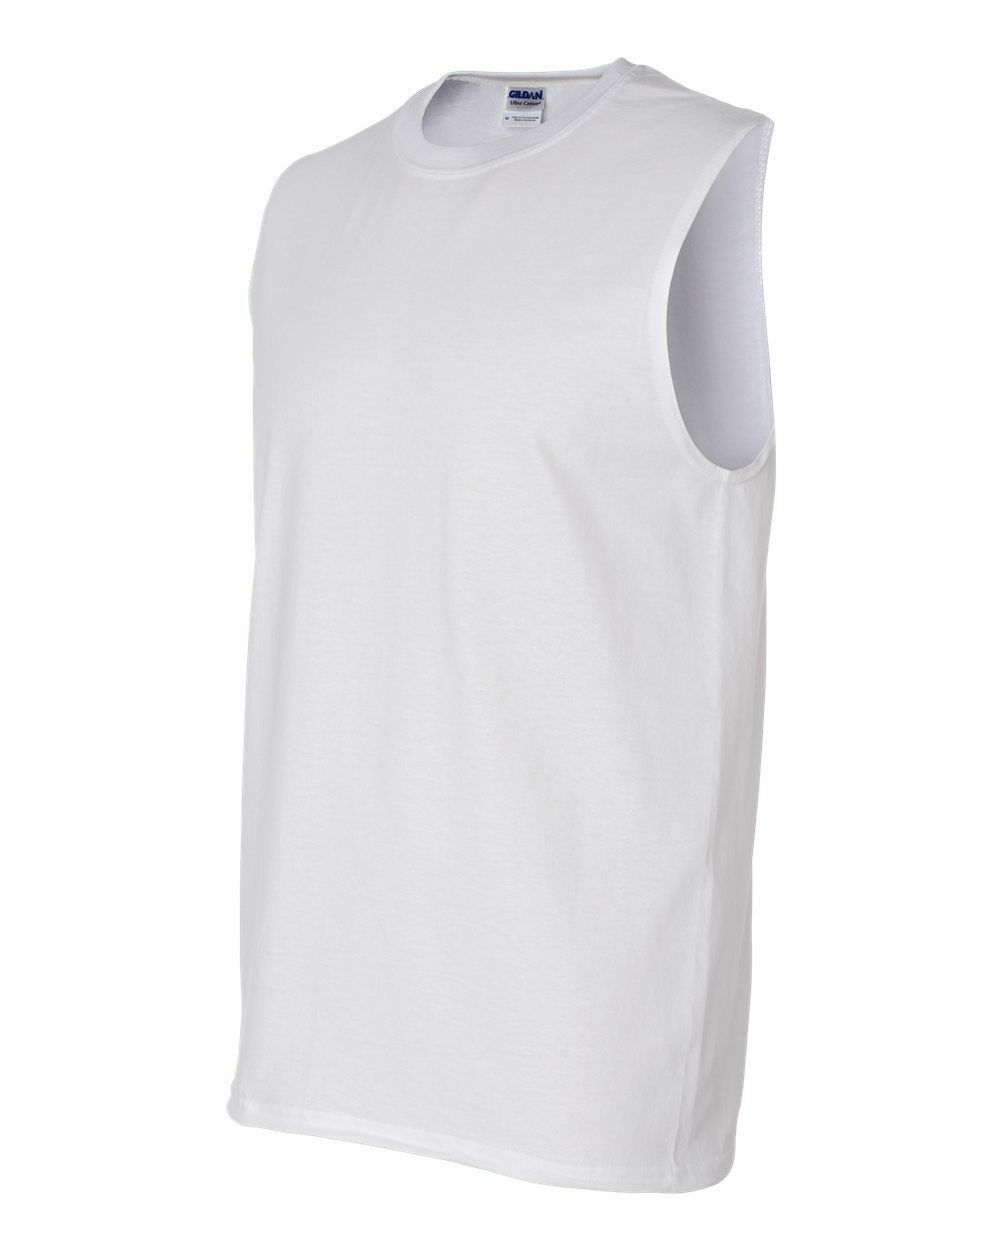 15 Blank Gildan Ultra Cotton Sleeveless Weiß T-Shirt Bulk Lot ok to mix S-XL